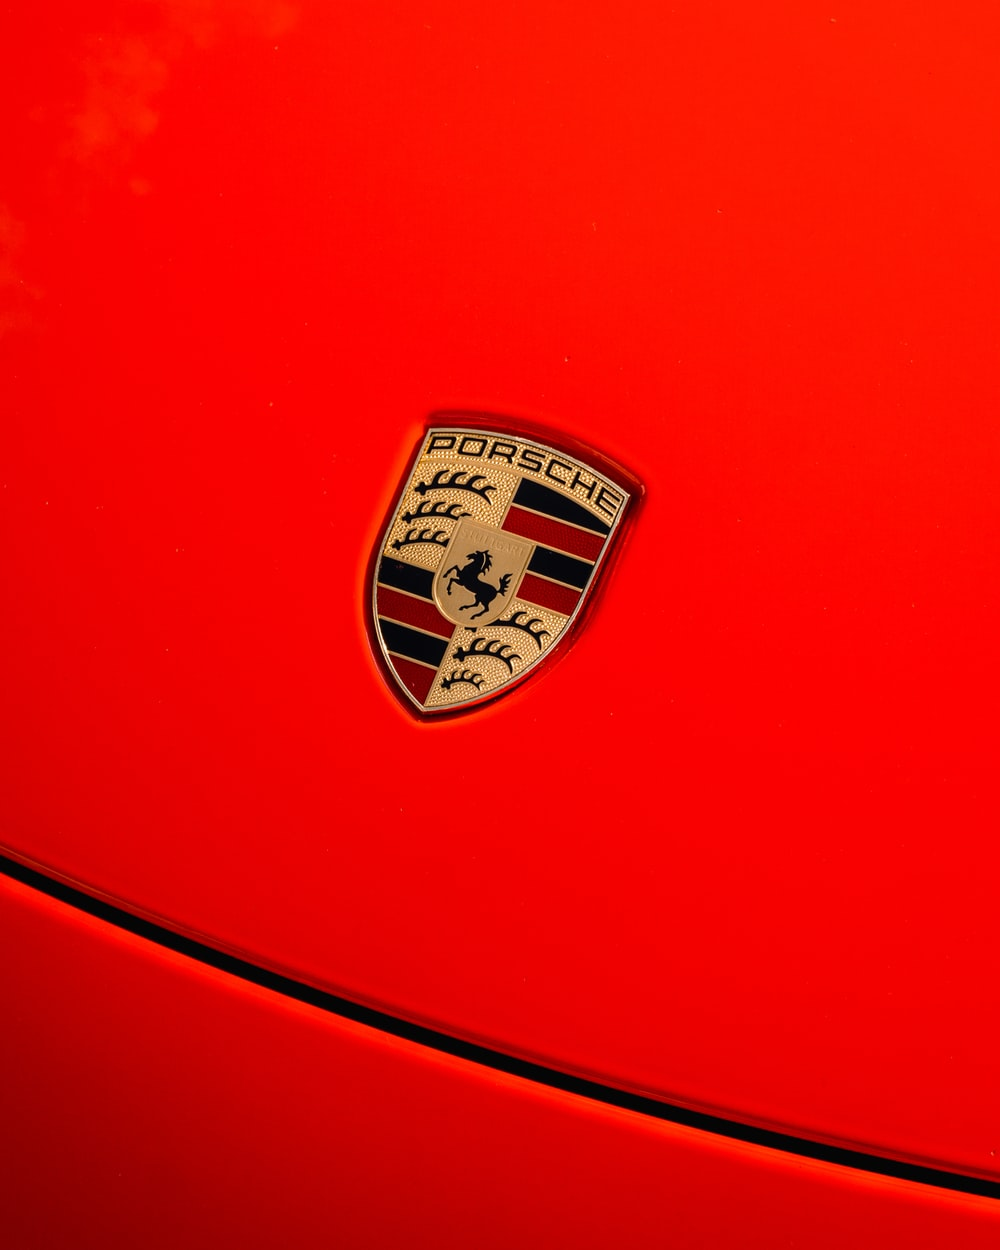 red and white car logo